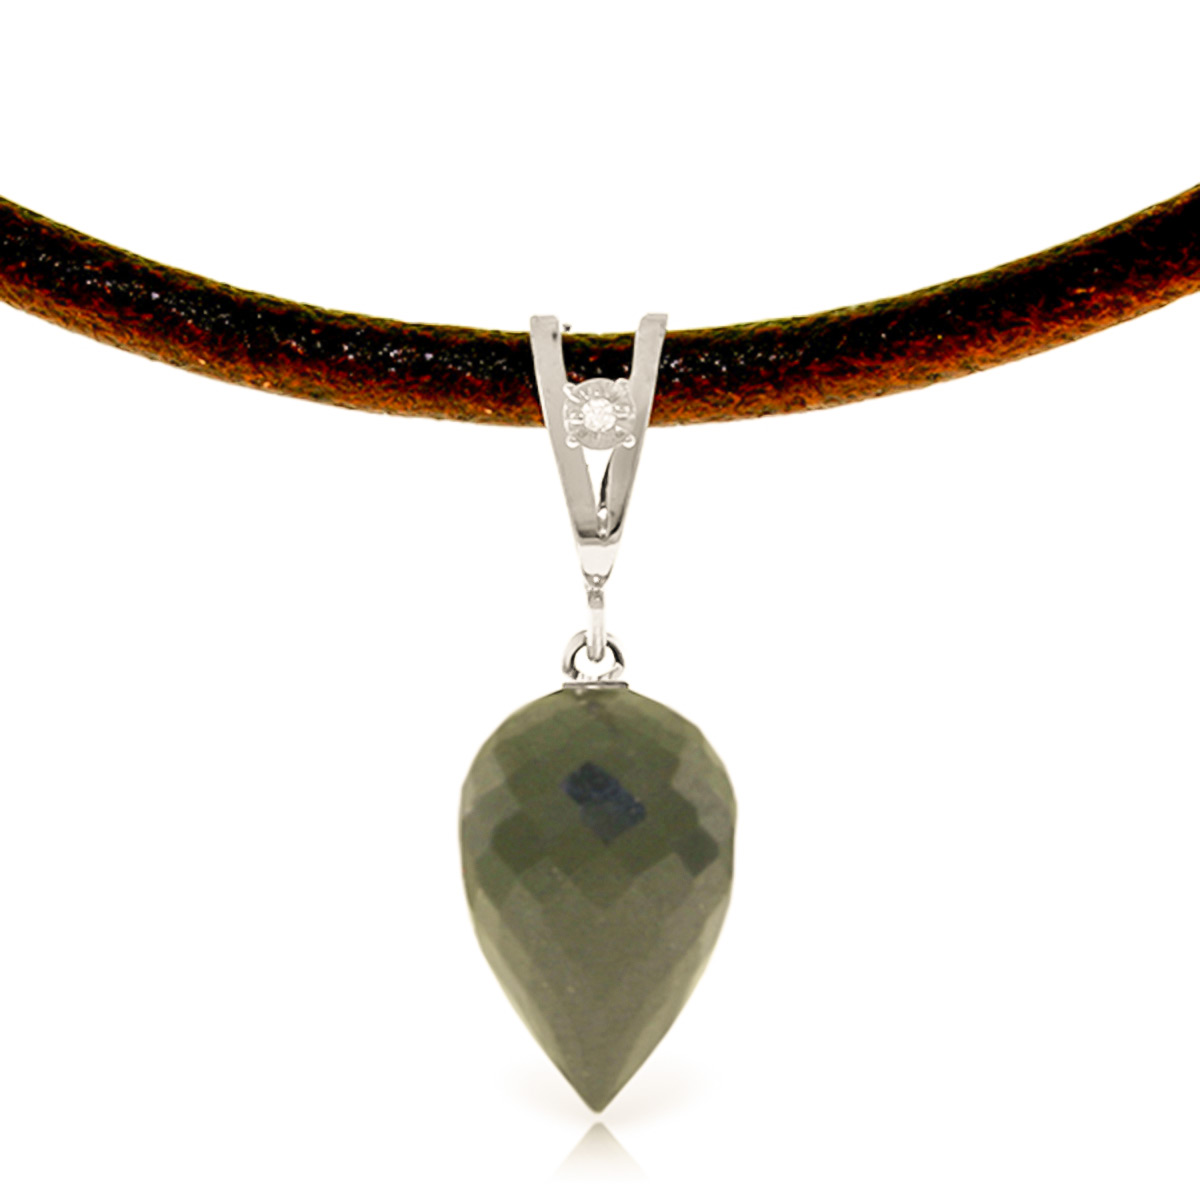 14K White Gold Leather Drop Necklace with 12.25ct Black Spinel Pendant